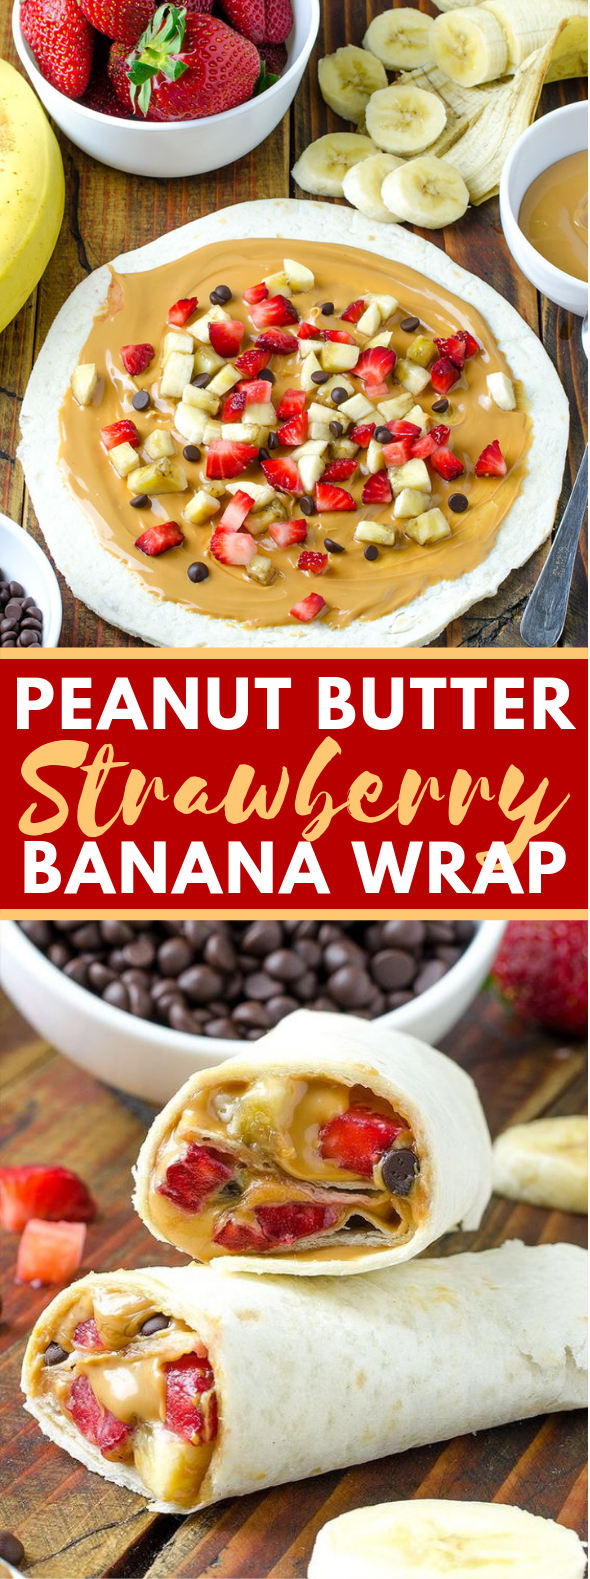 Healthy Peanut Butter, Strawberry, Banana Wrap Recipe #breakfast #healthysnack